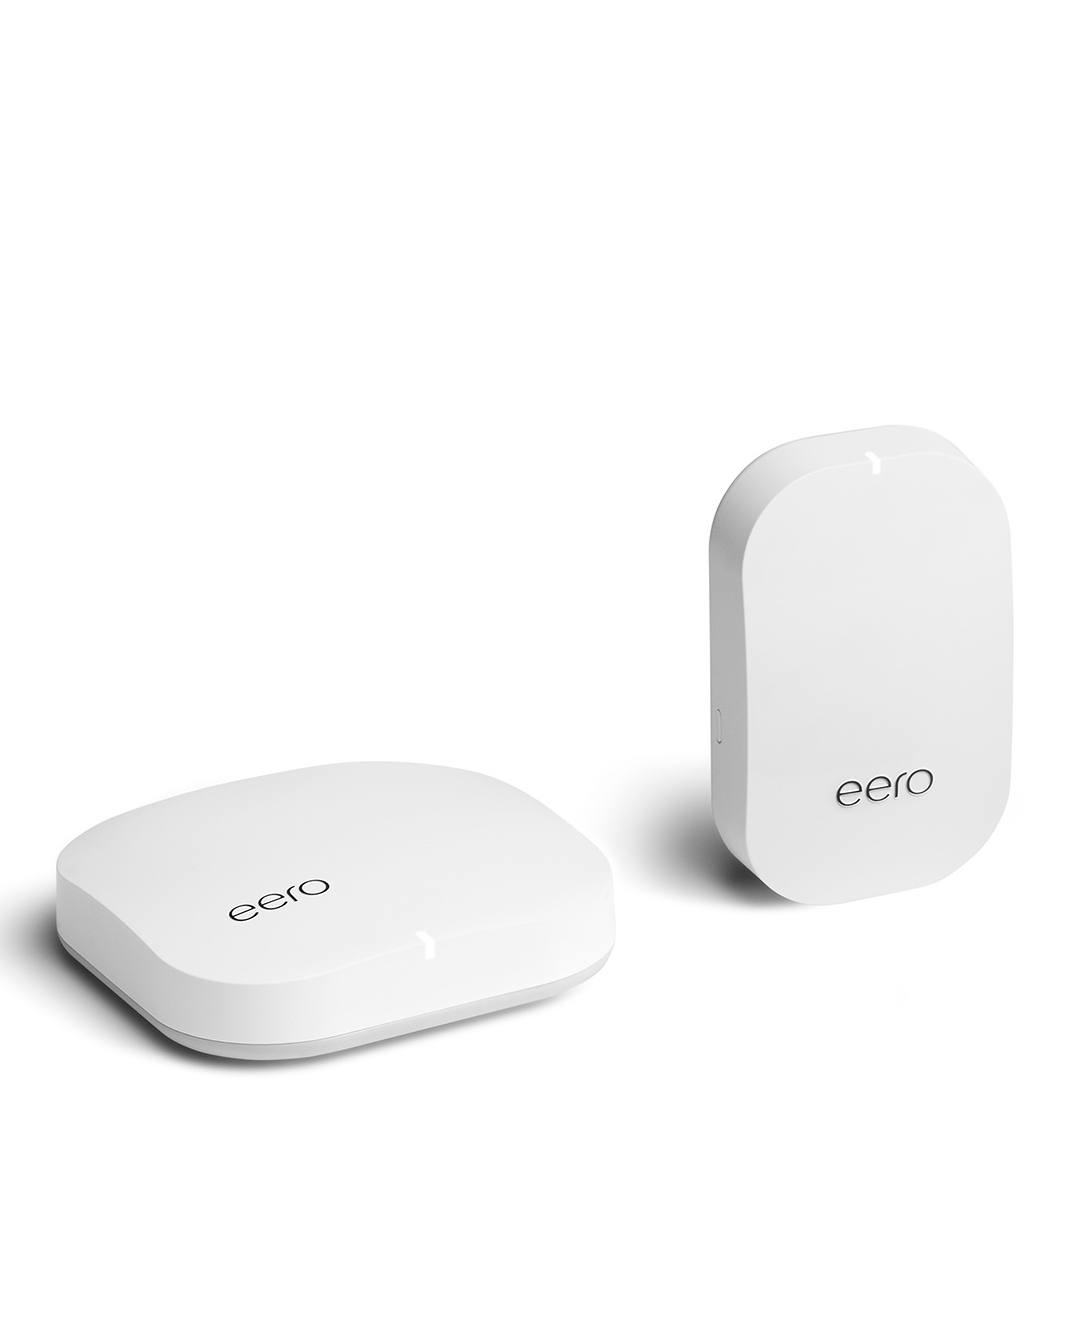 Best Tech Gifts for Birthdays and Christmas: eero router